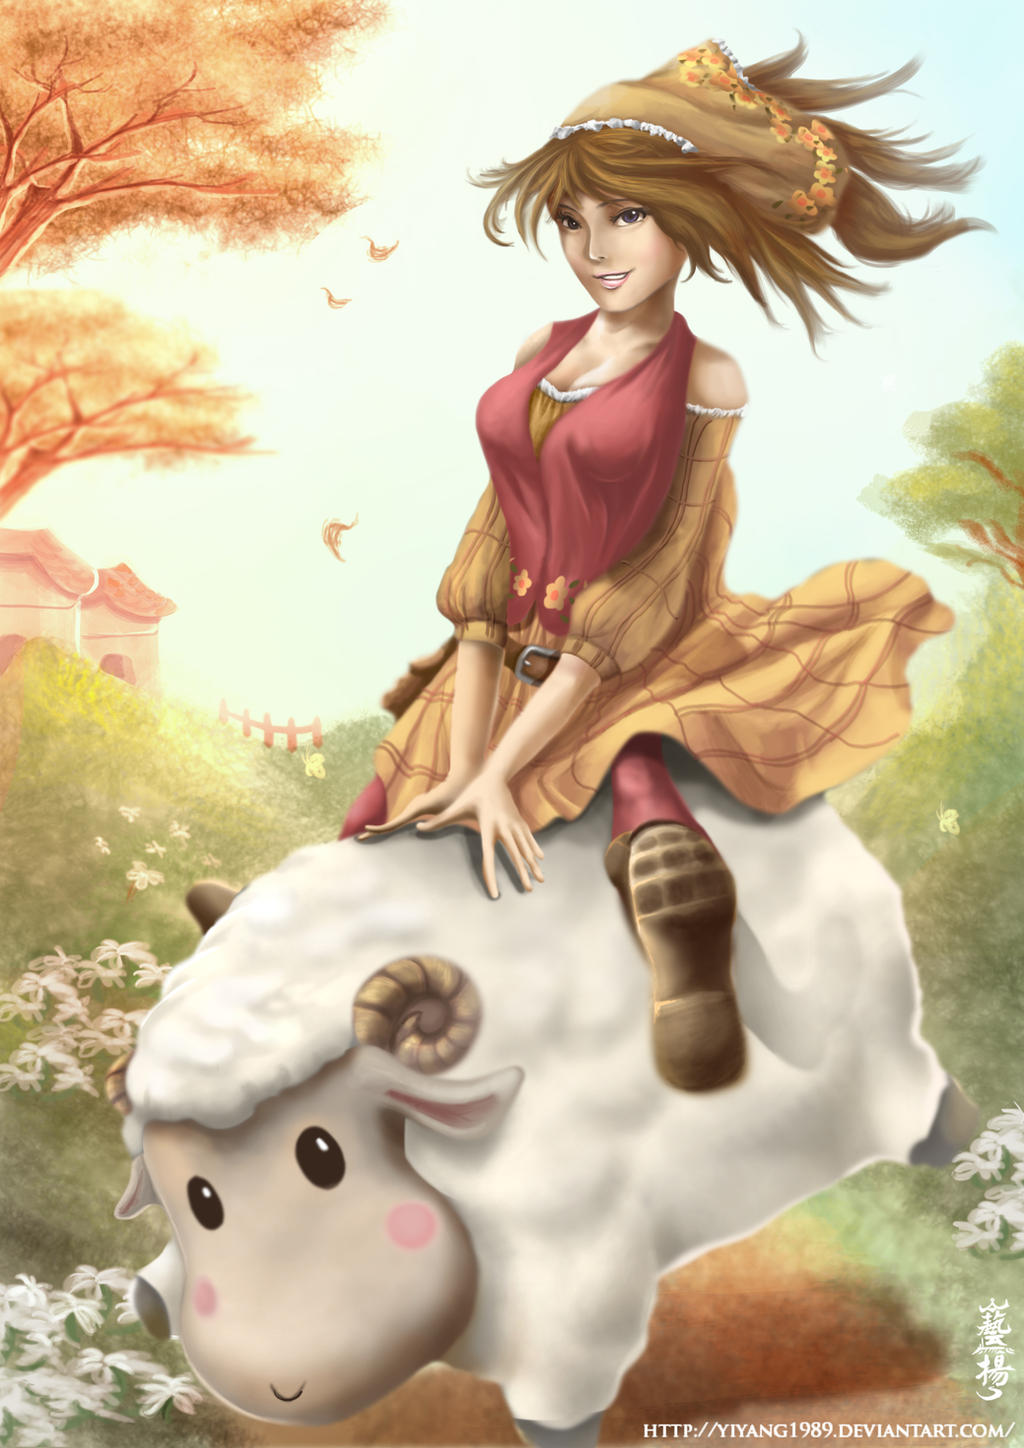 Lunar New Year 2015 - Harvest Moon Fanart by yiyang1989